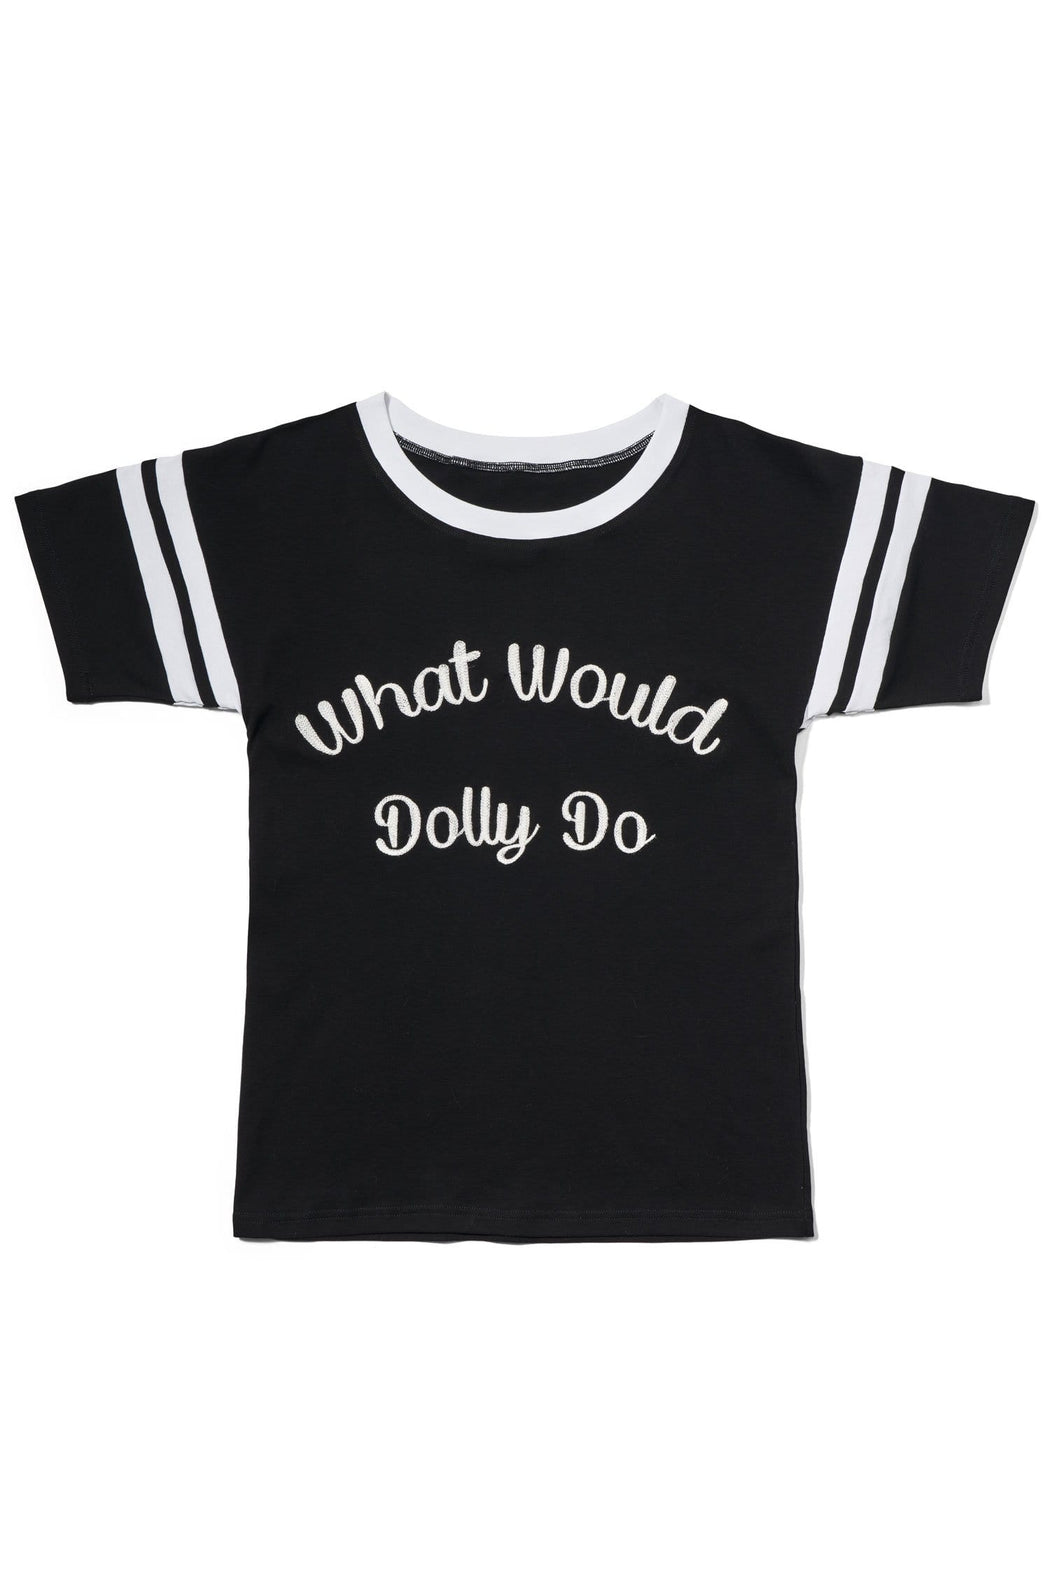 WHAT WOULD DOLLY DO TEE- NEW & IMPROVED!